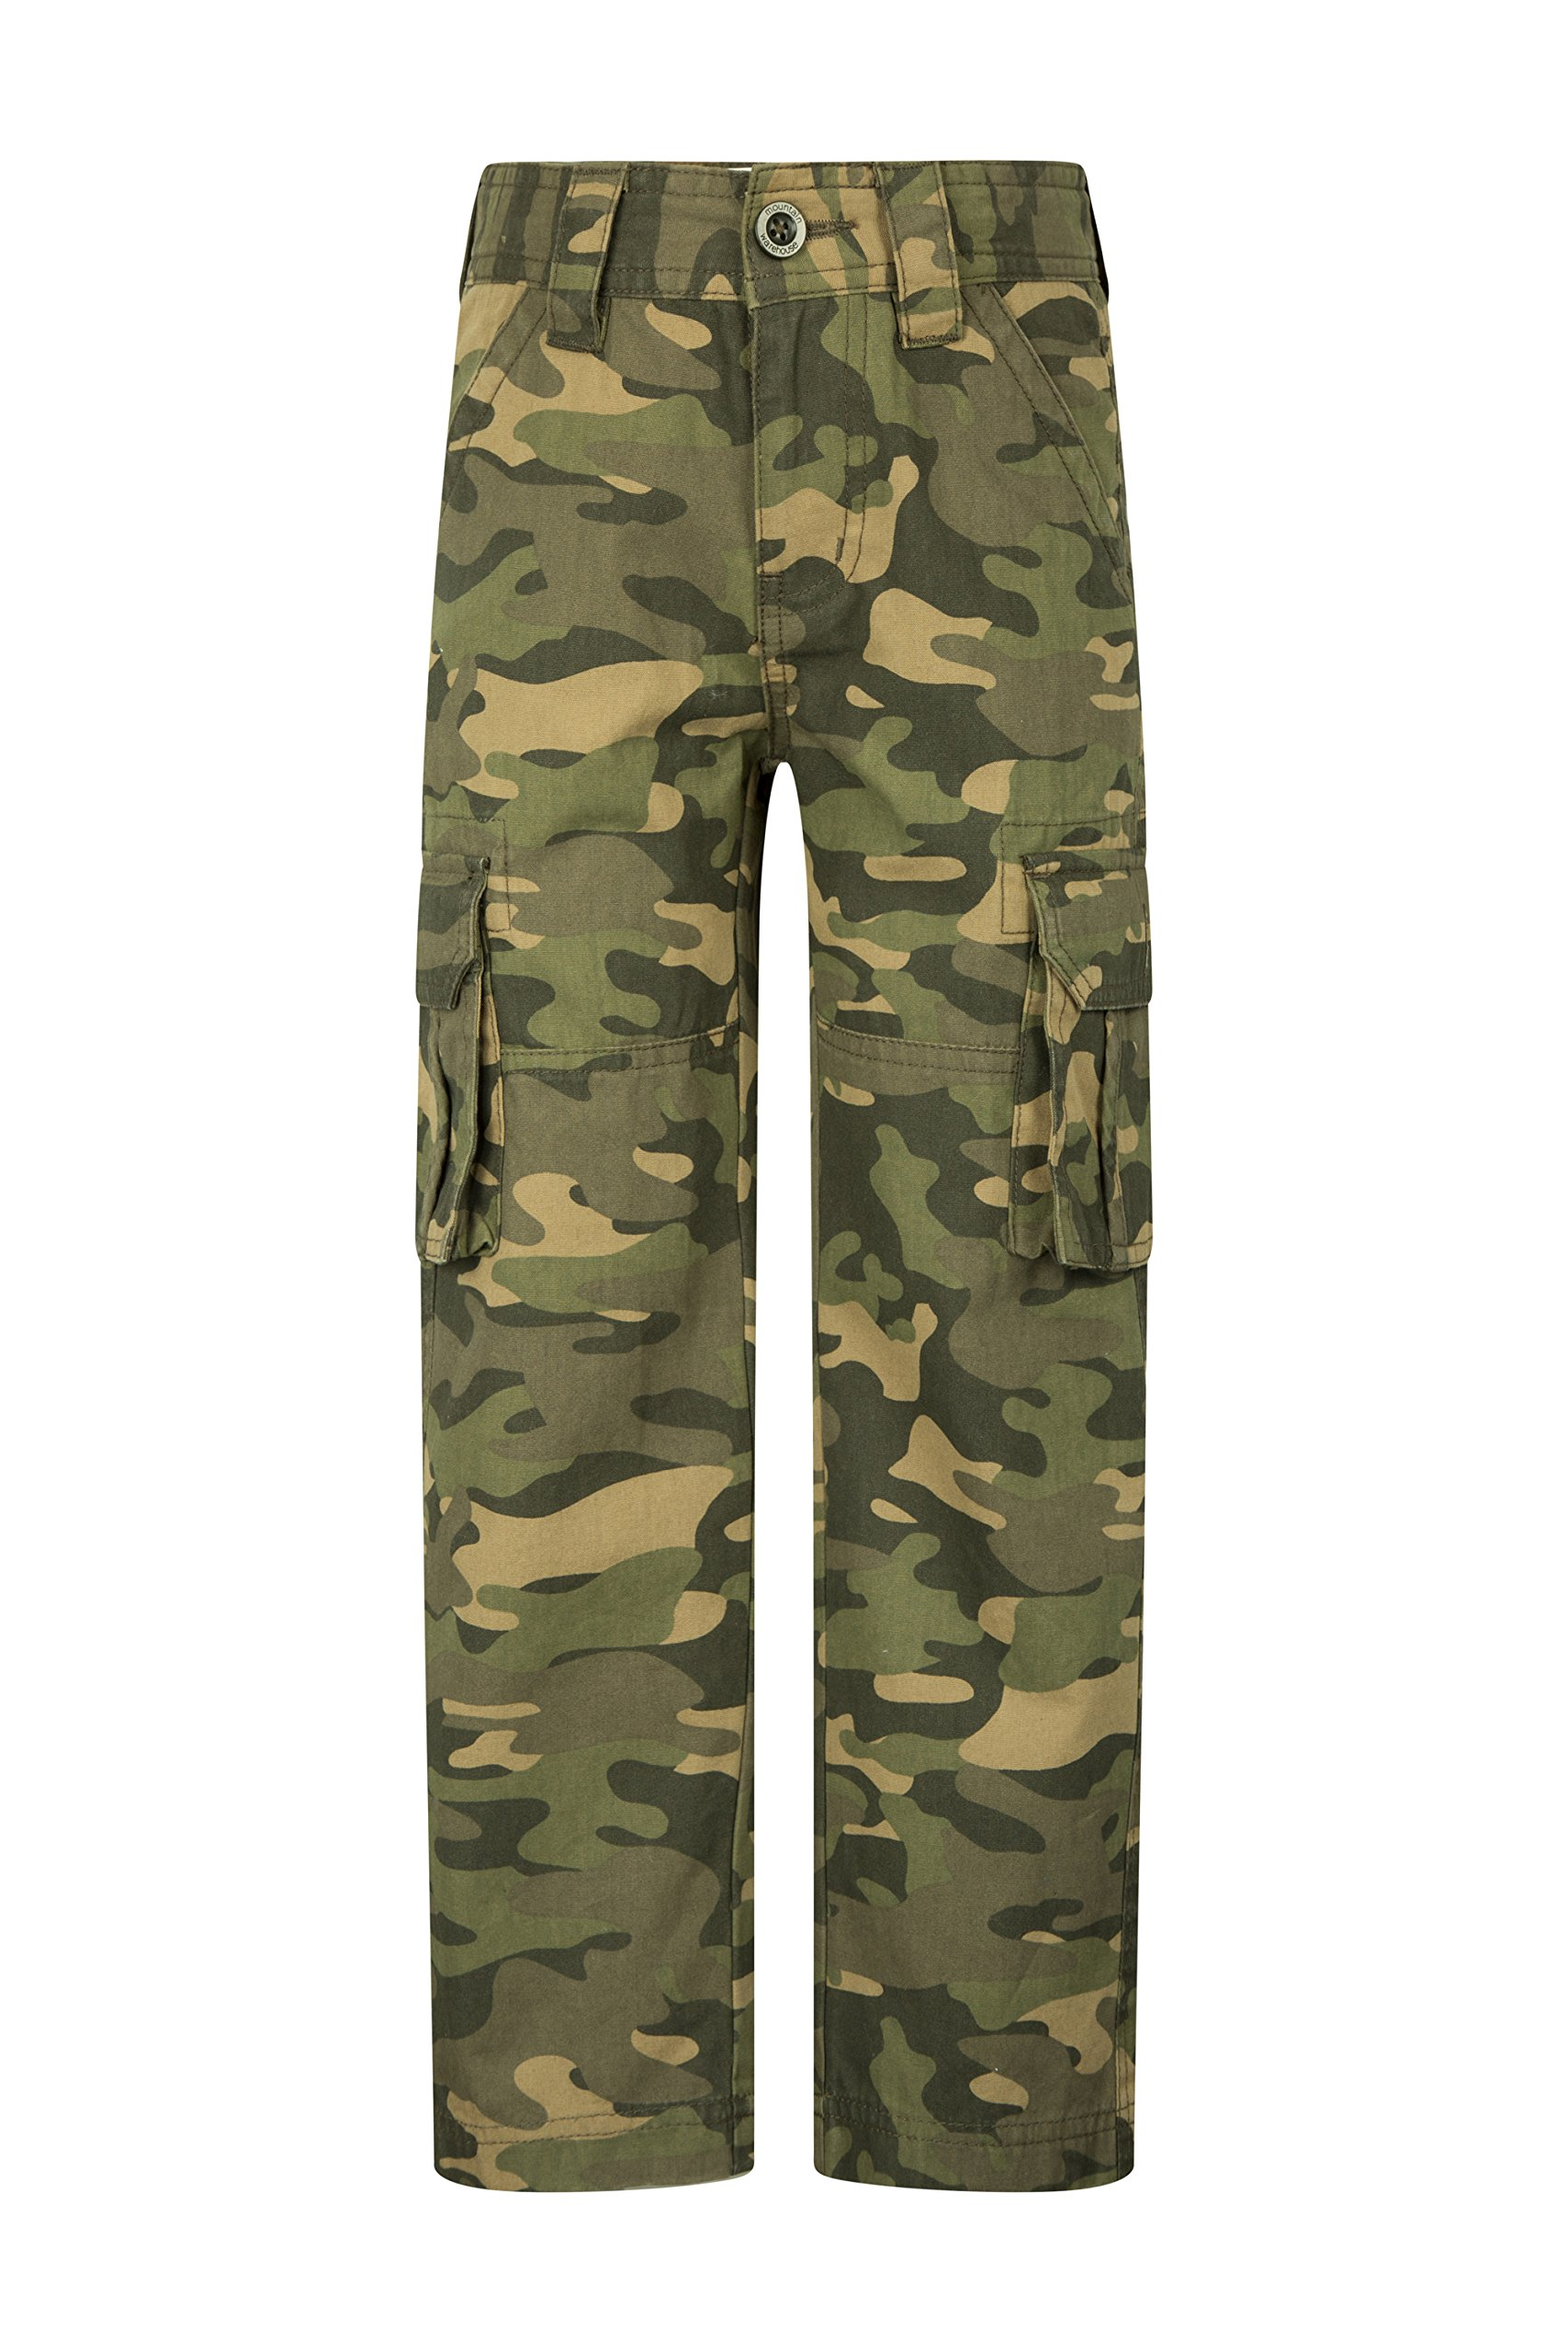 Mountain Warehouse Camo Kids Cargo Trousers -100% Cotton Summer Pants Camouflage 9-10 Years